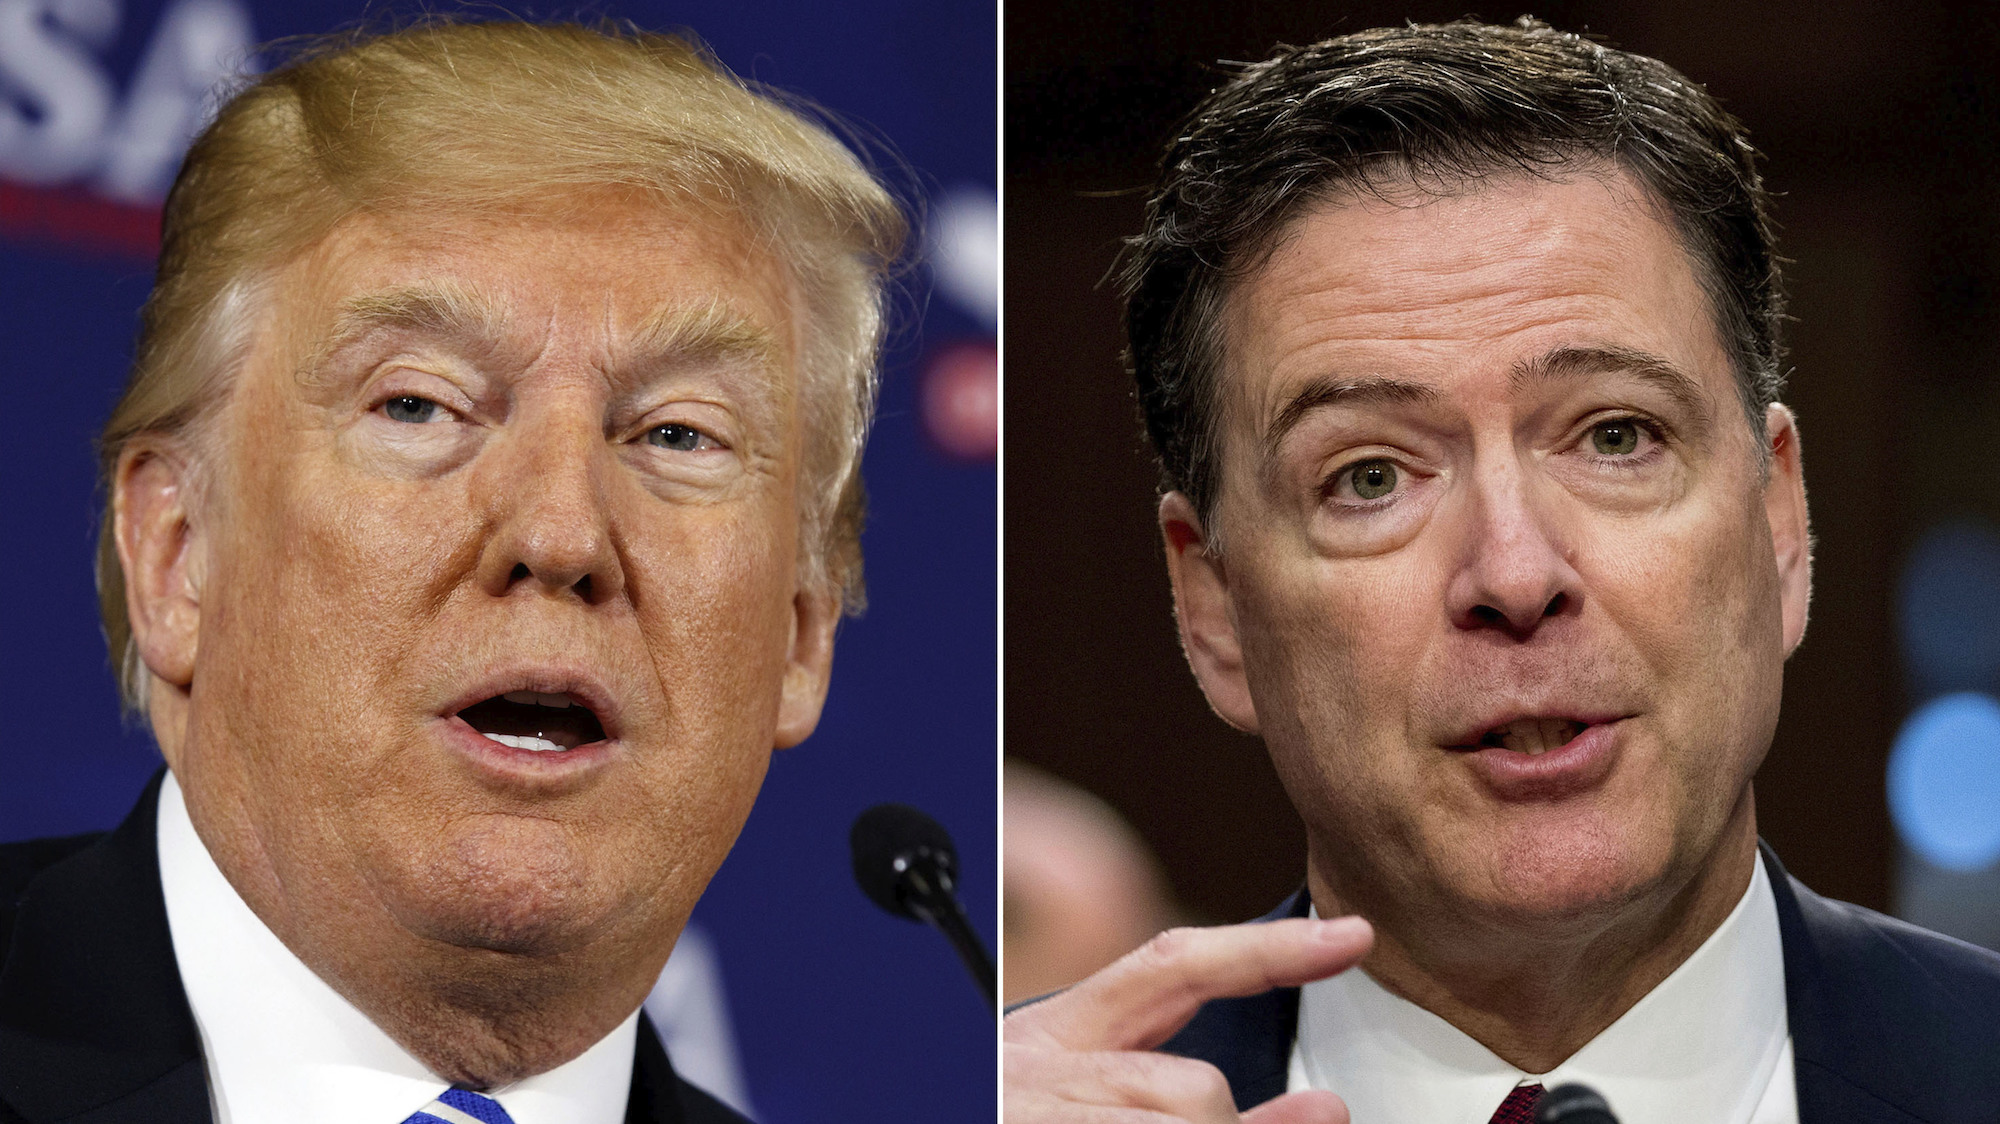 James Comey Tells Colbert Why He Was Surprised When Trump 'Whacked' Him